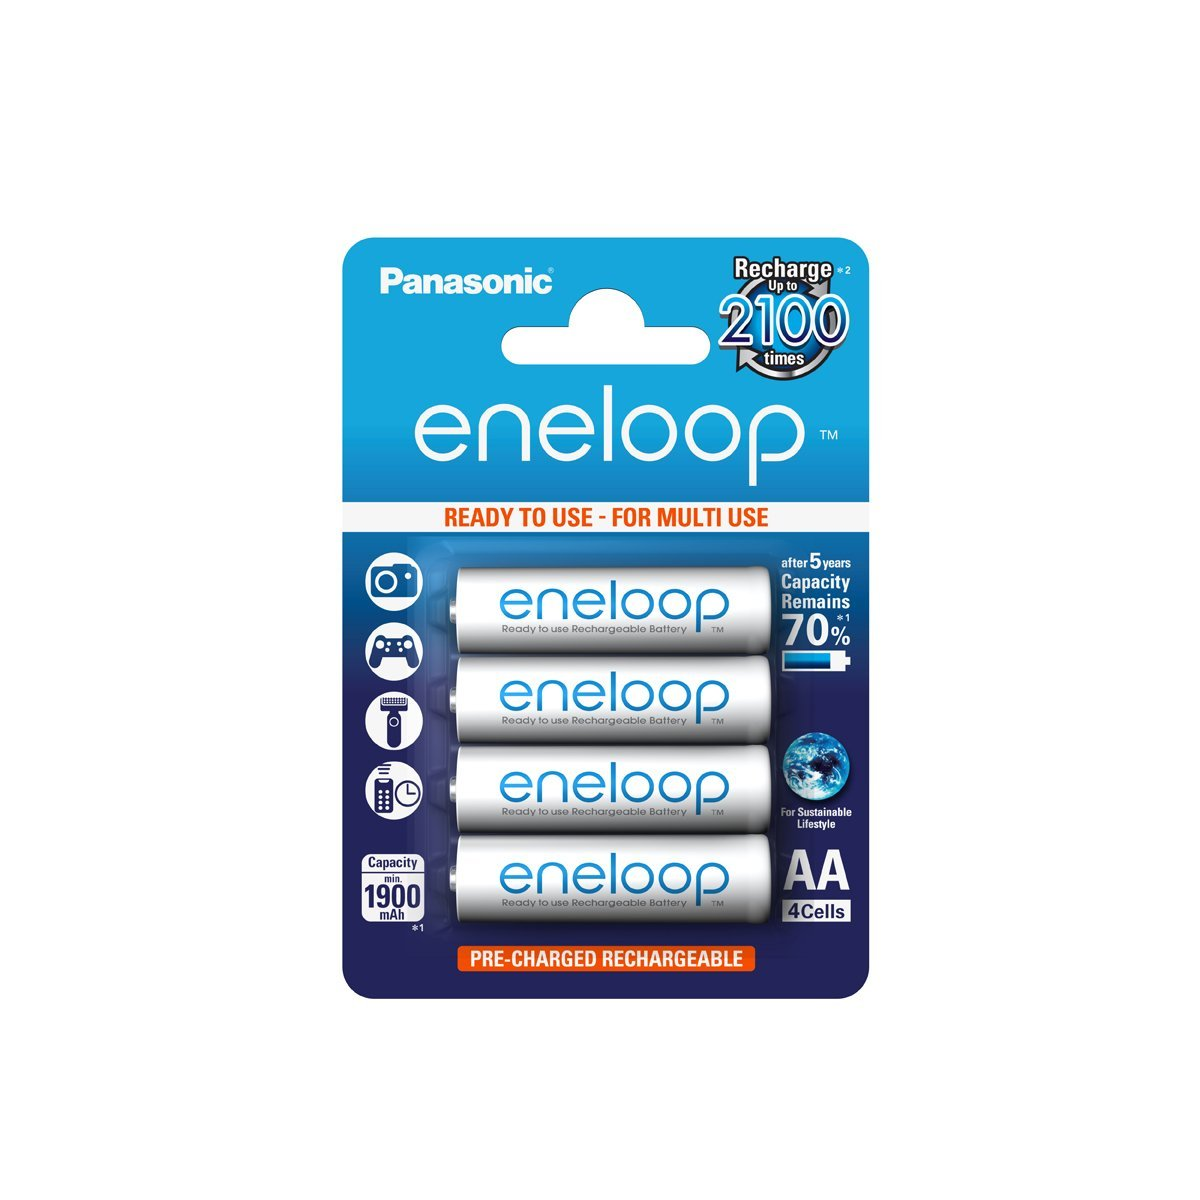 Panasonic Eneloop AA HR06 Ni-Mh Rechargeable Batteries 1900mAh Capacity Ready to Use - 4 Pack